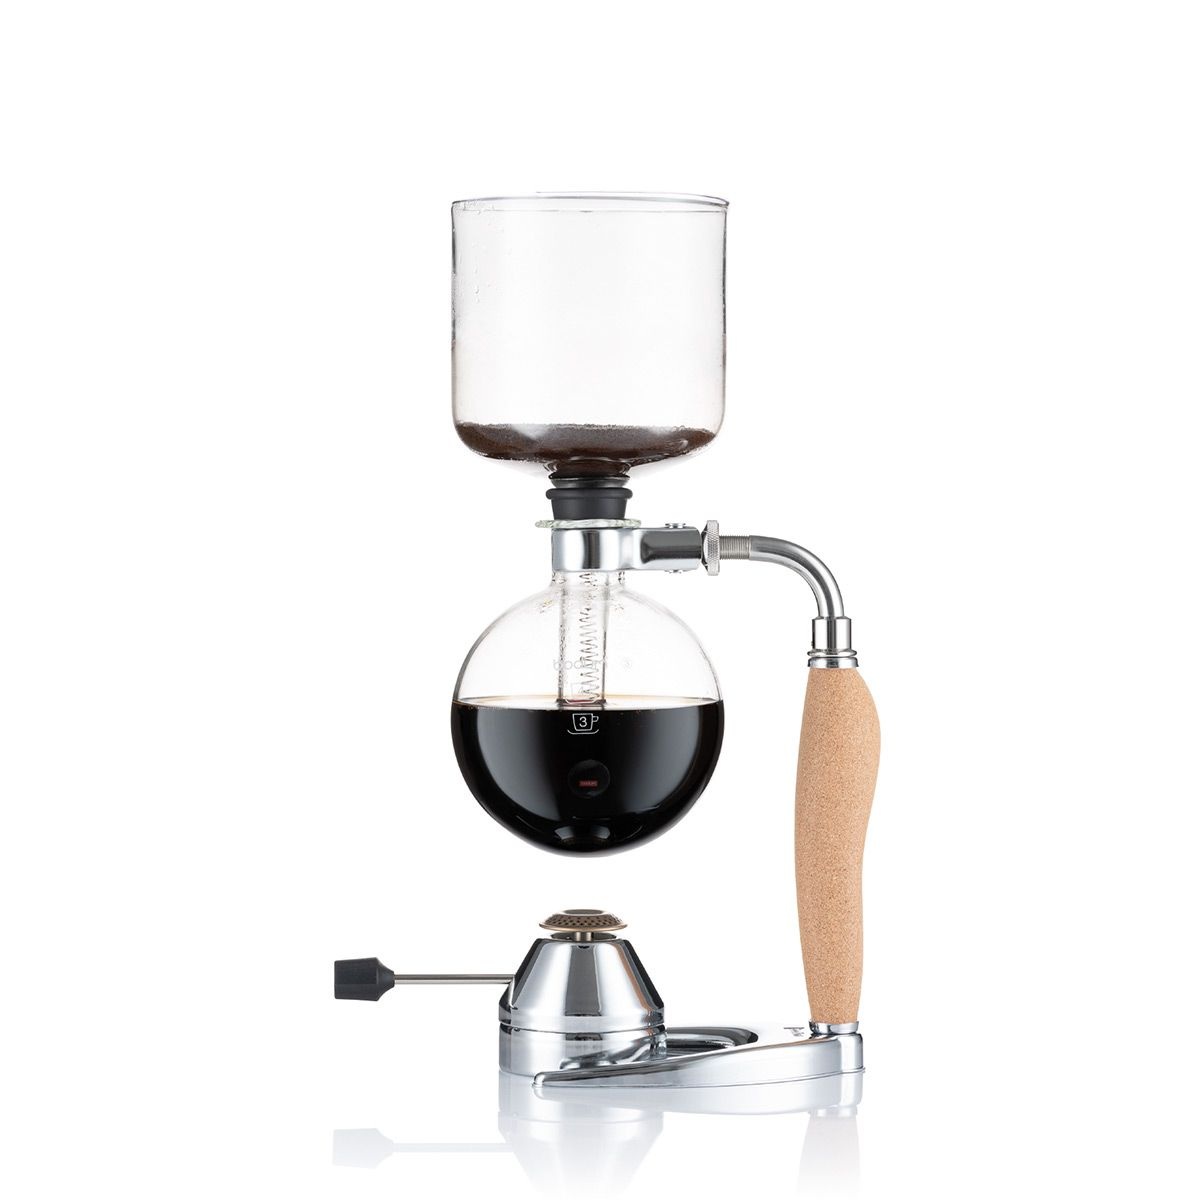 Vacuum Coffee Maker and Gas Burner MOCCA Bodum